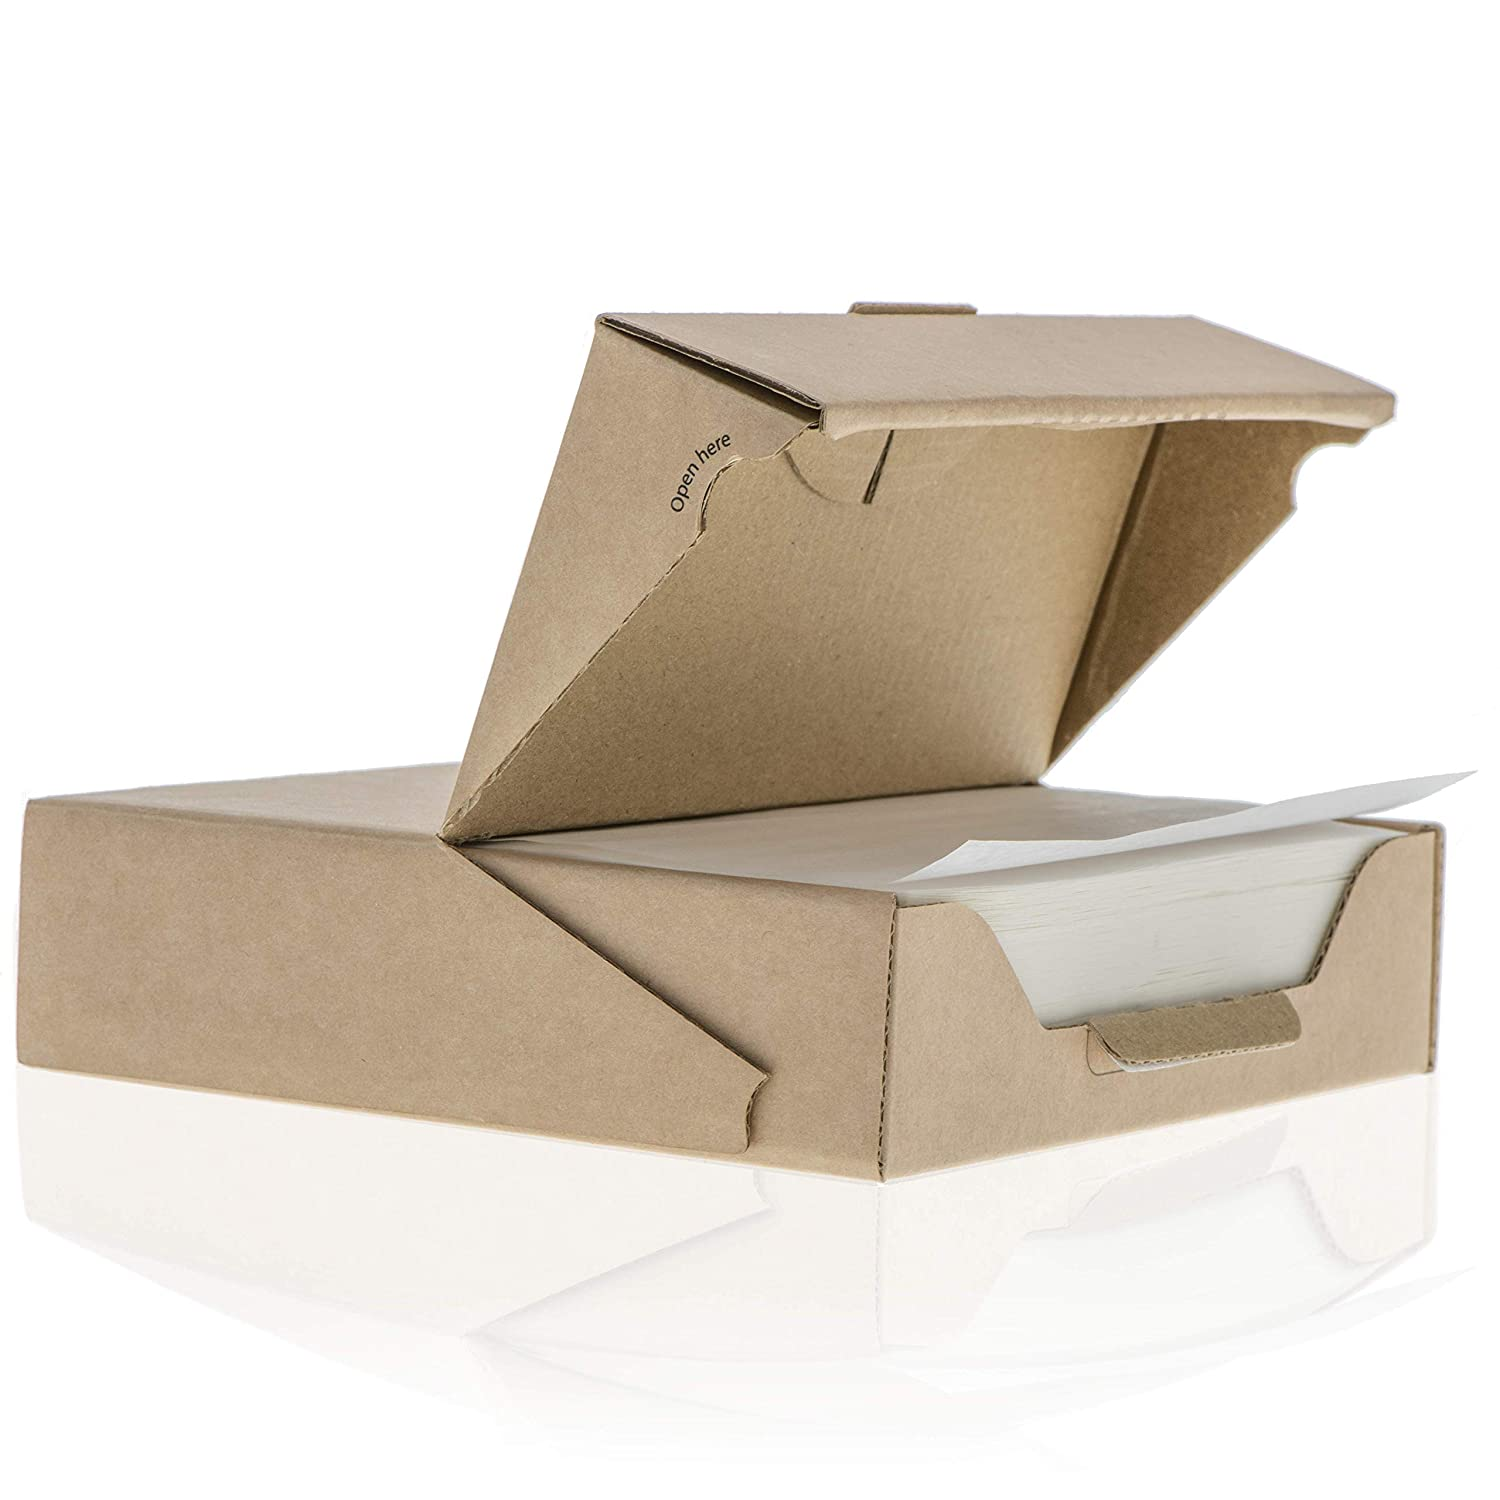 ZeZaZu Parchment Paper Squares - 5.5 x 5.5 inches (500 sheets) - MADE IN EUROPE - for Baking, Hamburger | Dual-Sided Coating, Non-stick, Siliconized, Convenient Recyclable Dispenser Box